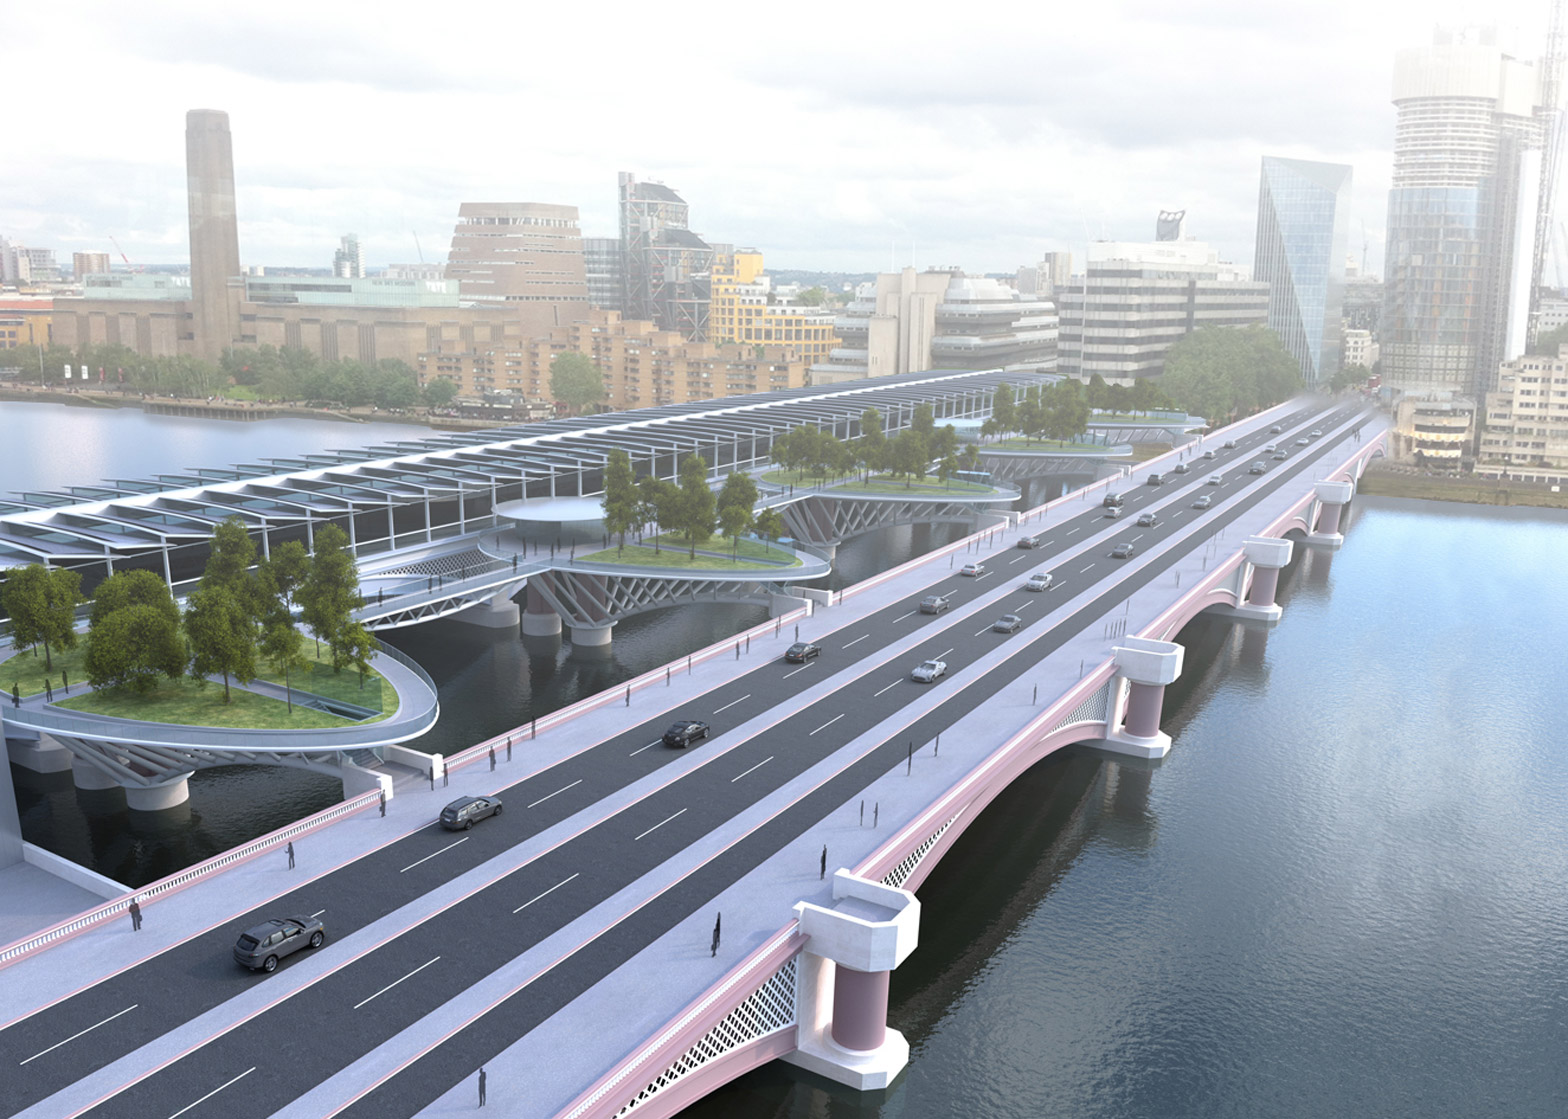 Crispin Wride unveils an alternative proposal for a garden bridge at Blackfriars, including a series of garden islands